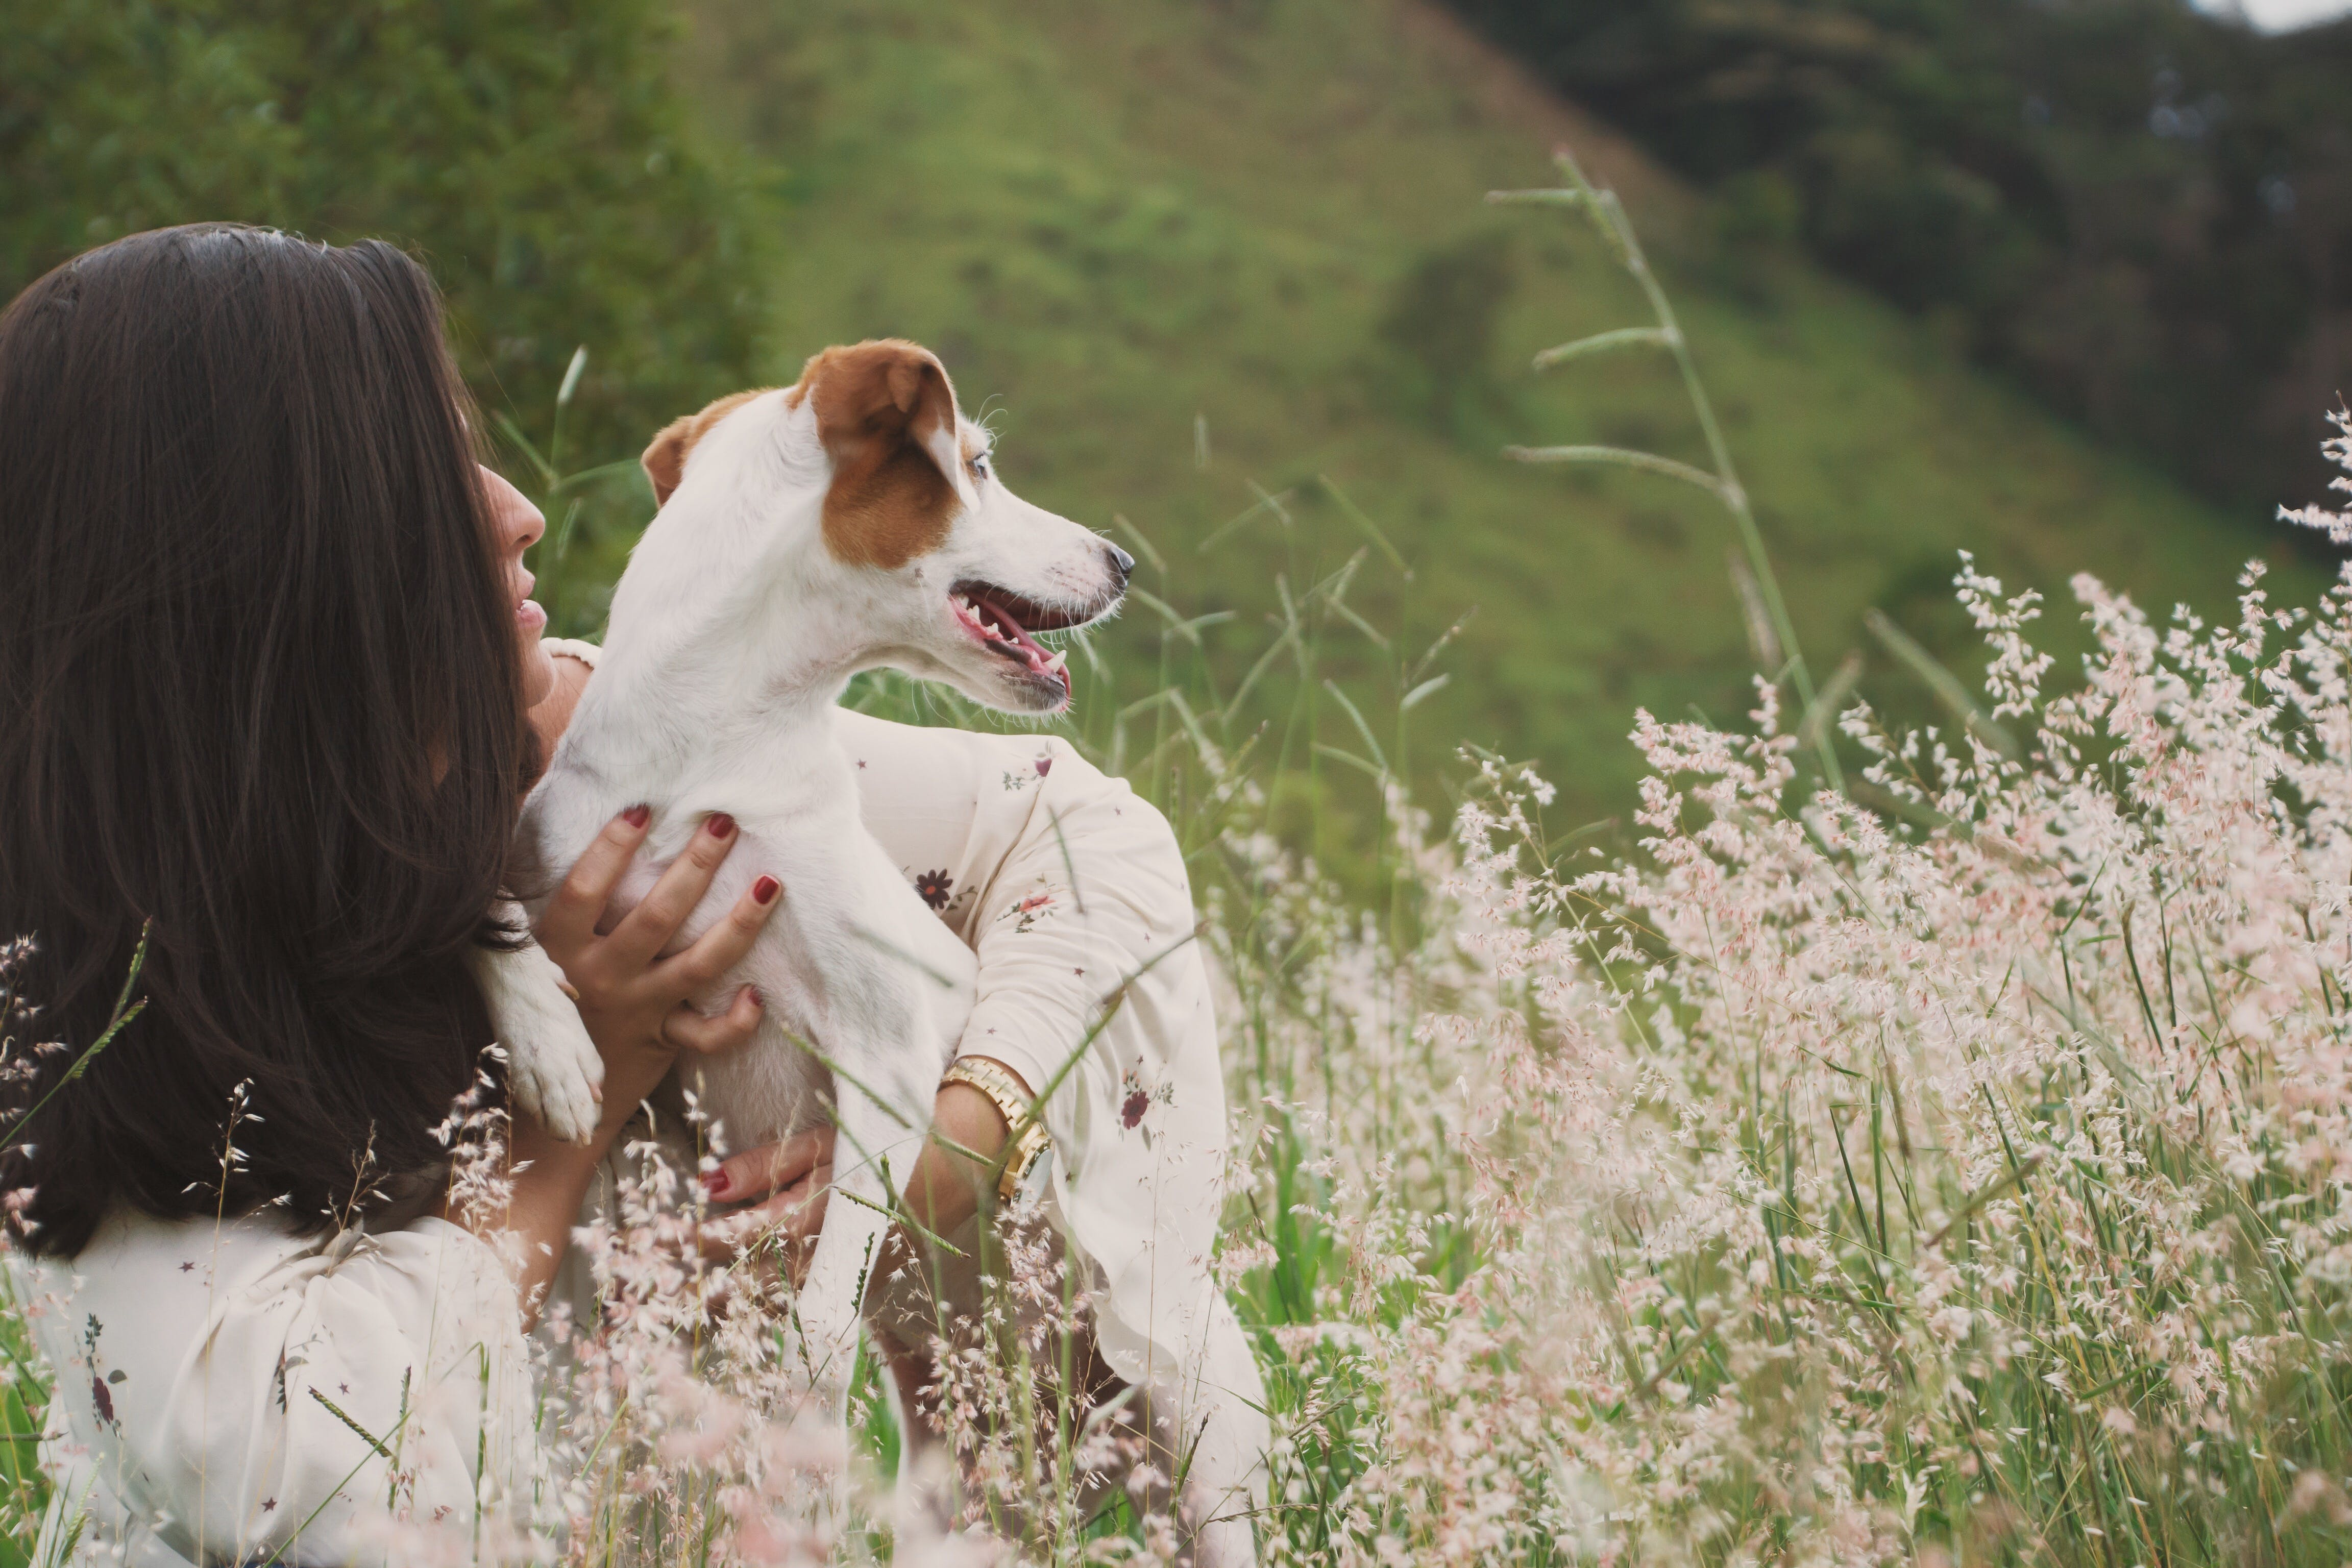 Woman Wearing White Dress Holding White and Brown Dog